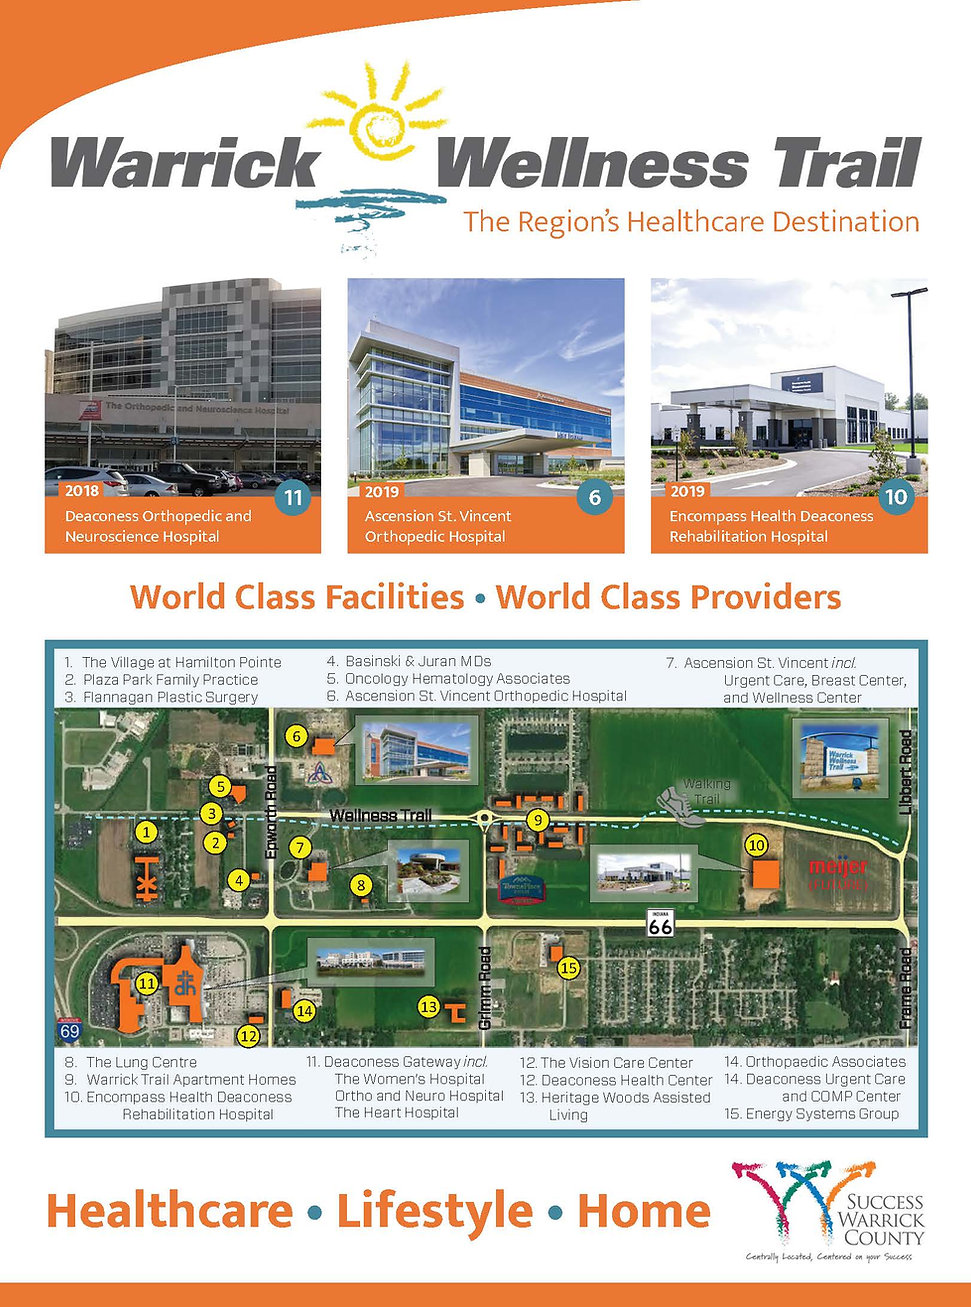 Warrick Wellness New1.jpg